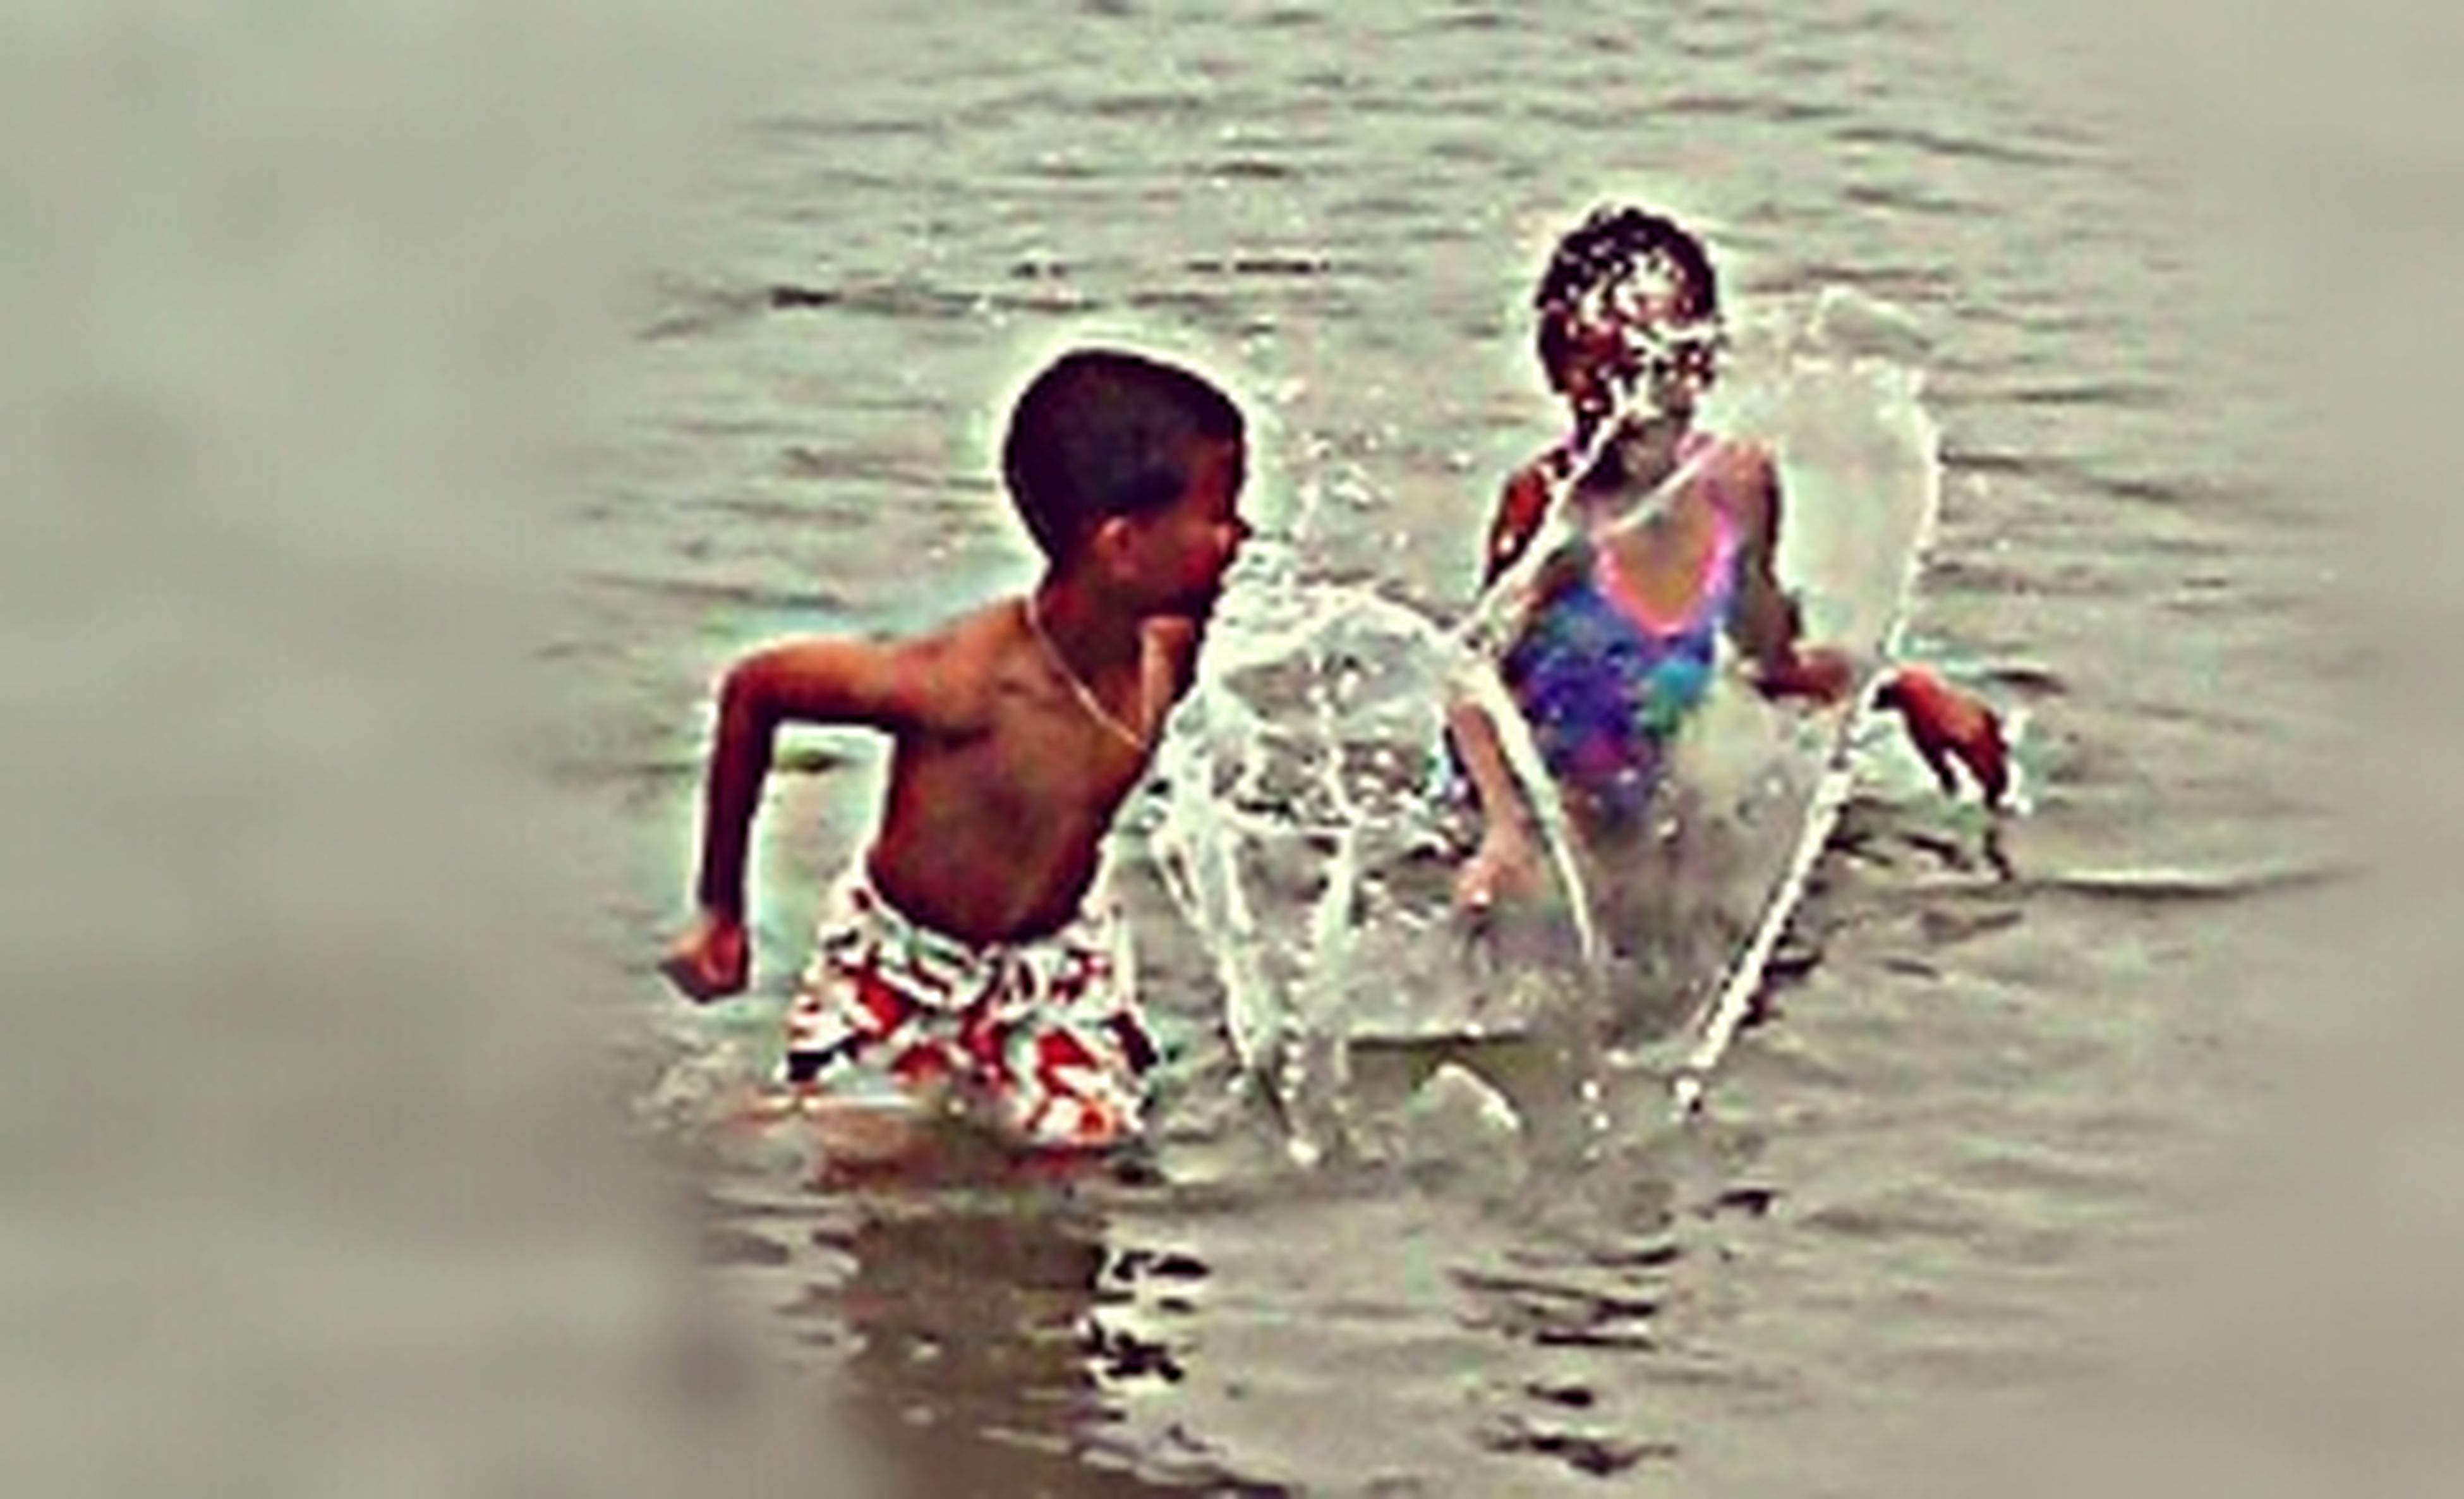 water, waterfront, lifestyles, leisure activity, swimming, childhood, sea, enjoyment, rippled, boys, togetherness, reflection, fun, vacations, shirtless, person, elementary age